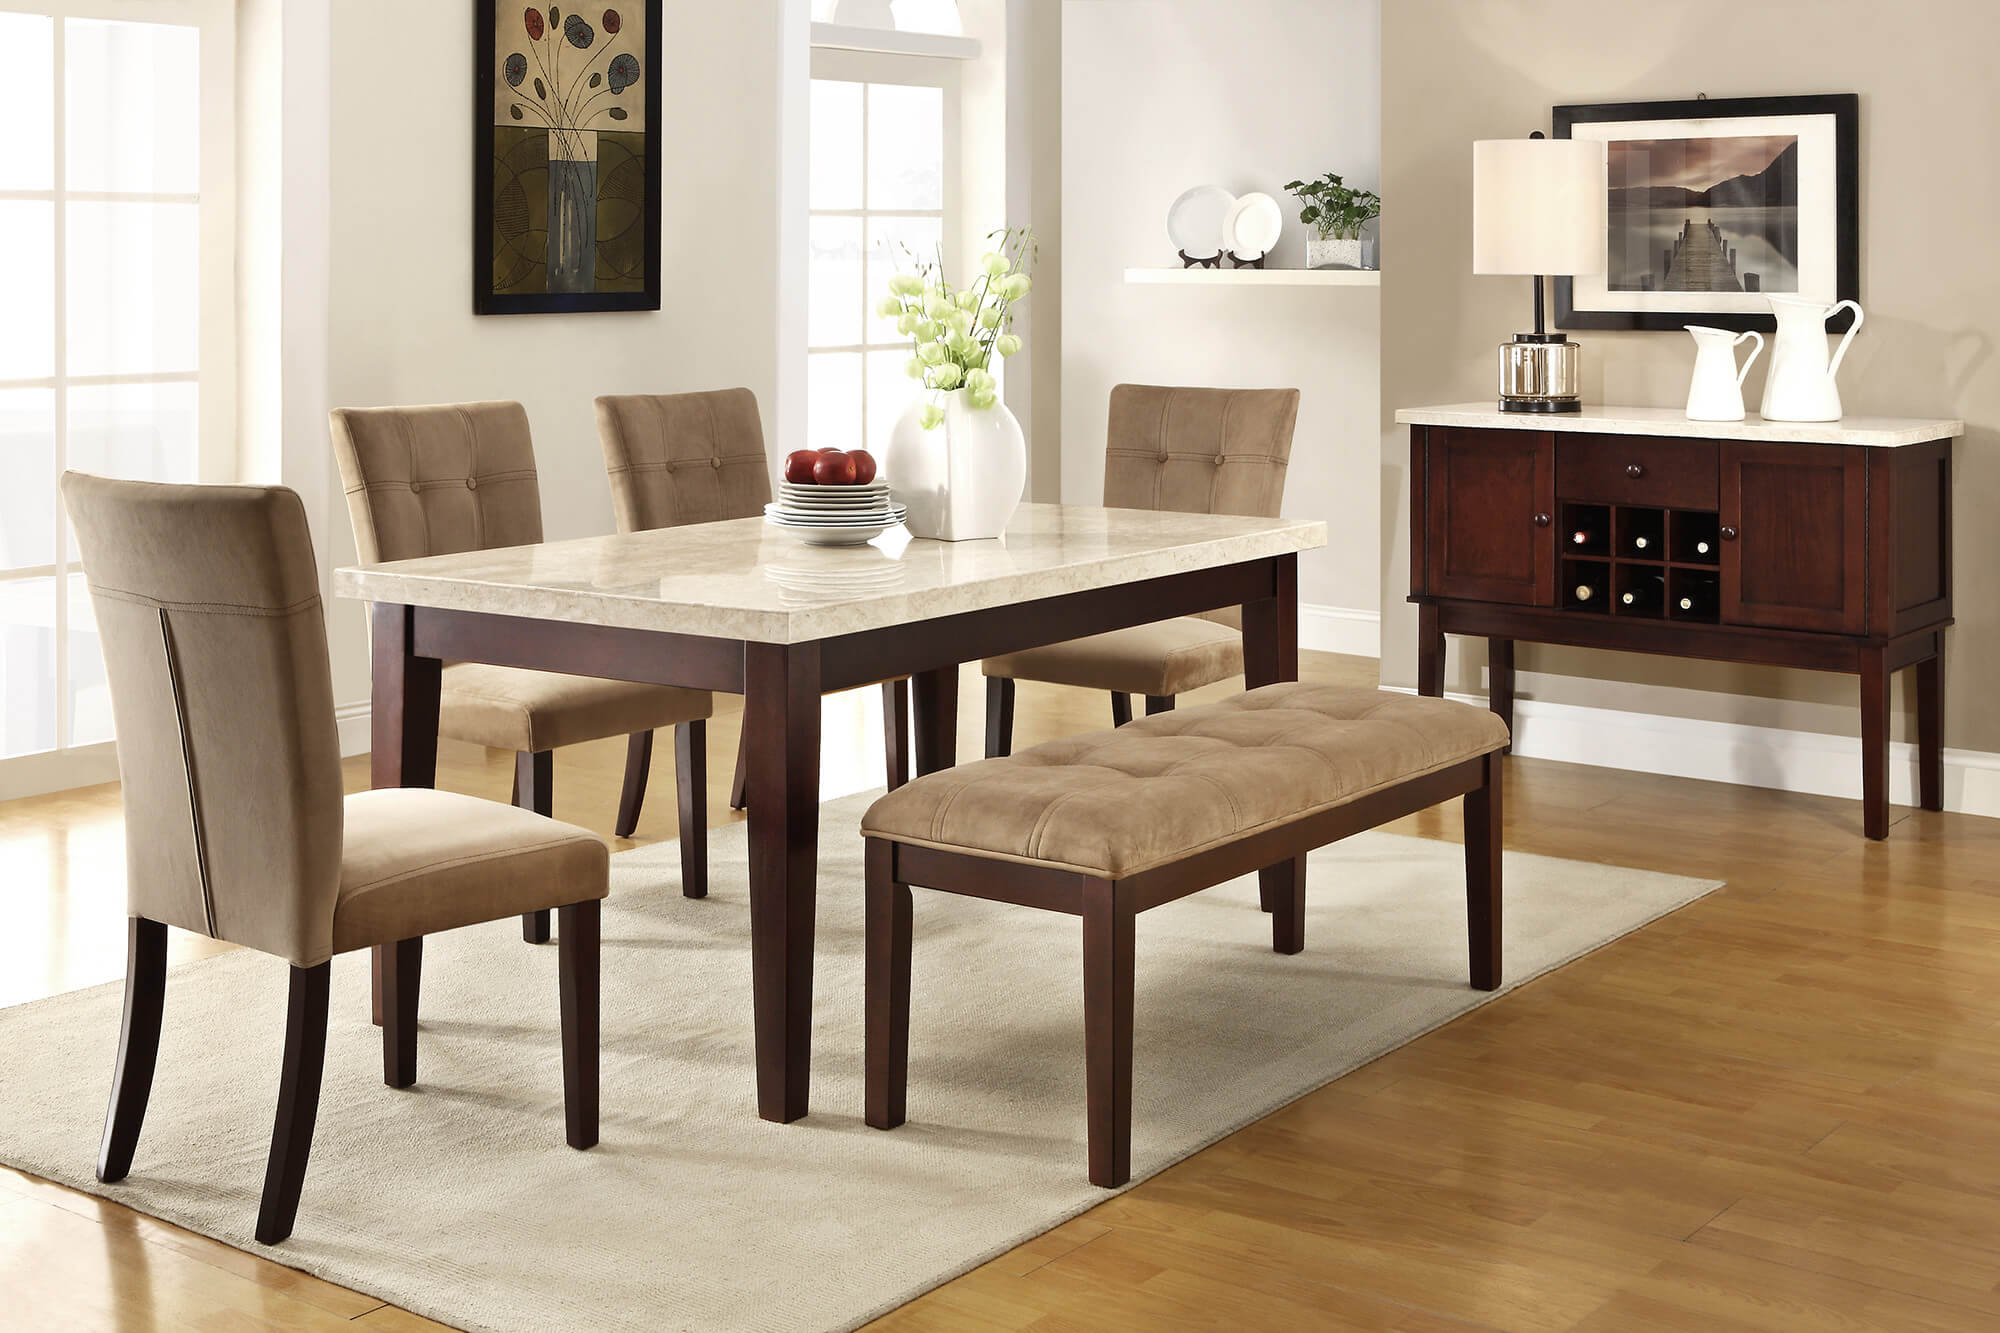 Hereu0027s A 6 Piece Rubberwood Dining Set With Faux Marble Table Top With Tan  Upholstery For